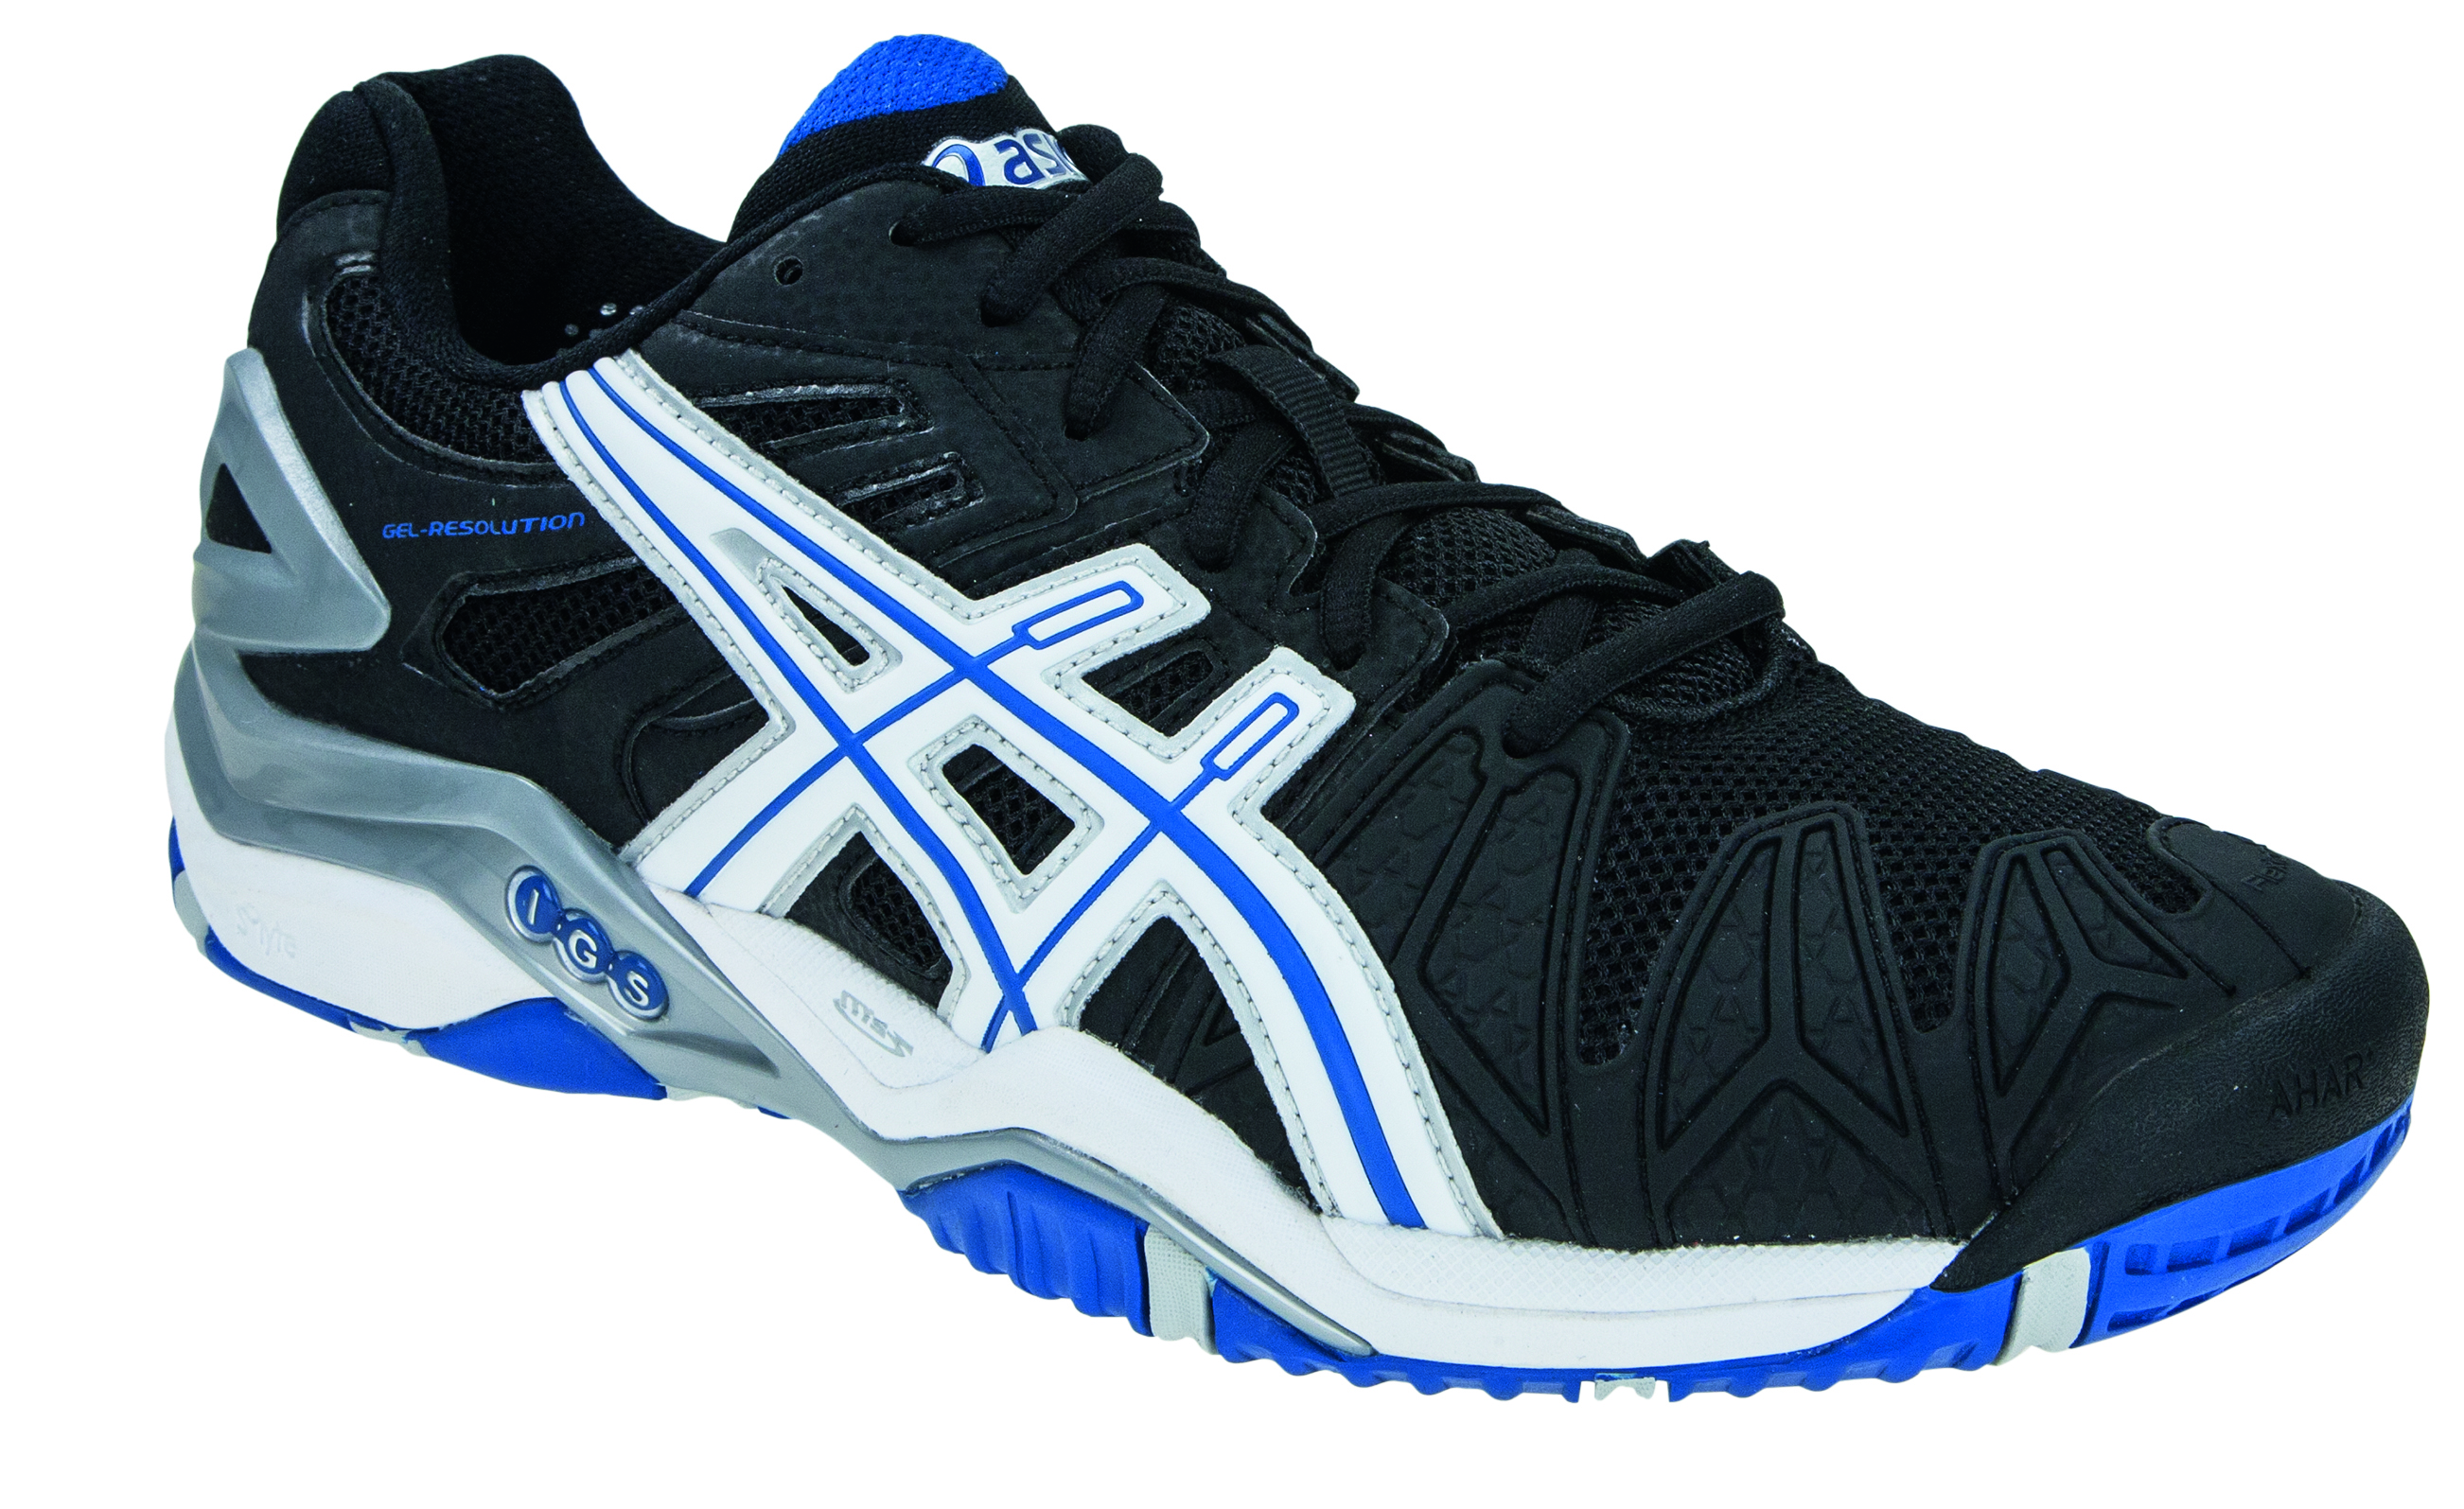 ASICS - GEL-RESOLUTION 5 - 130 euros 2